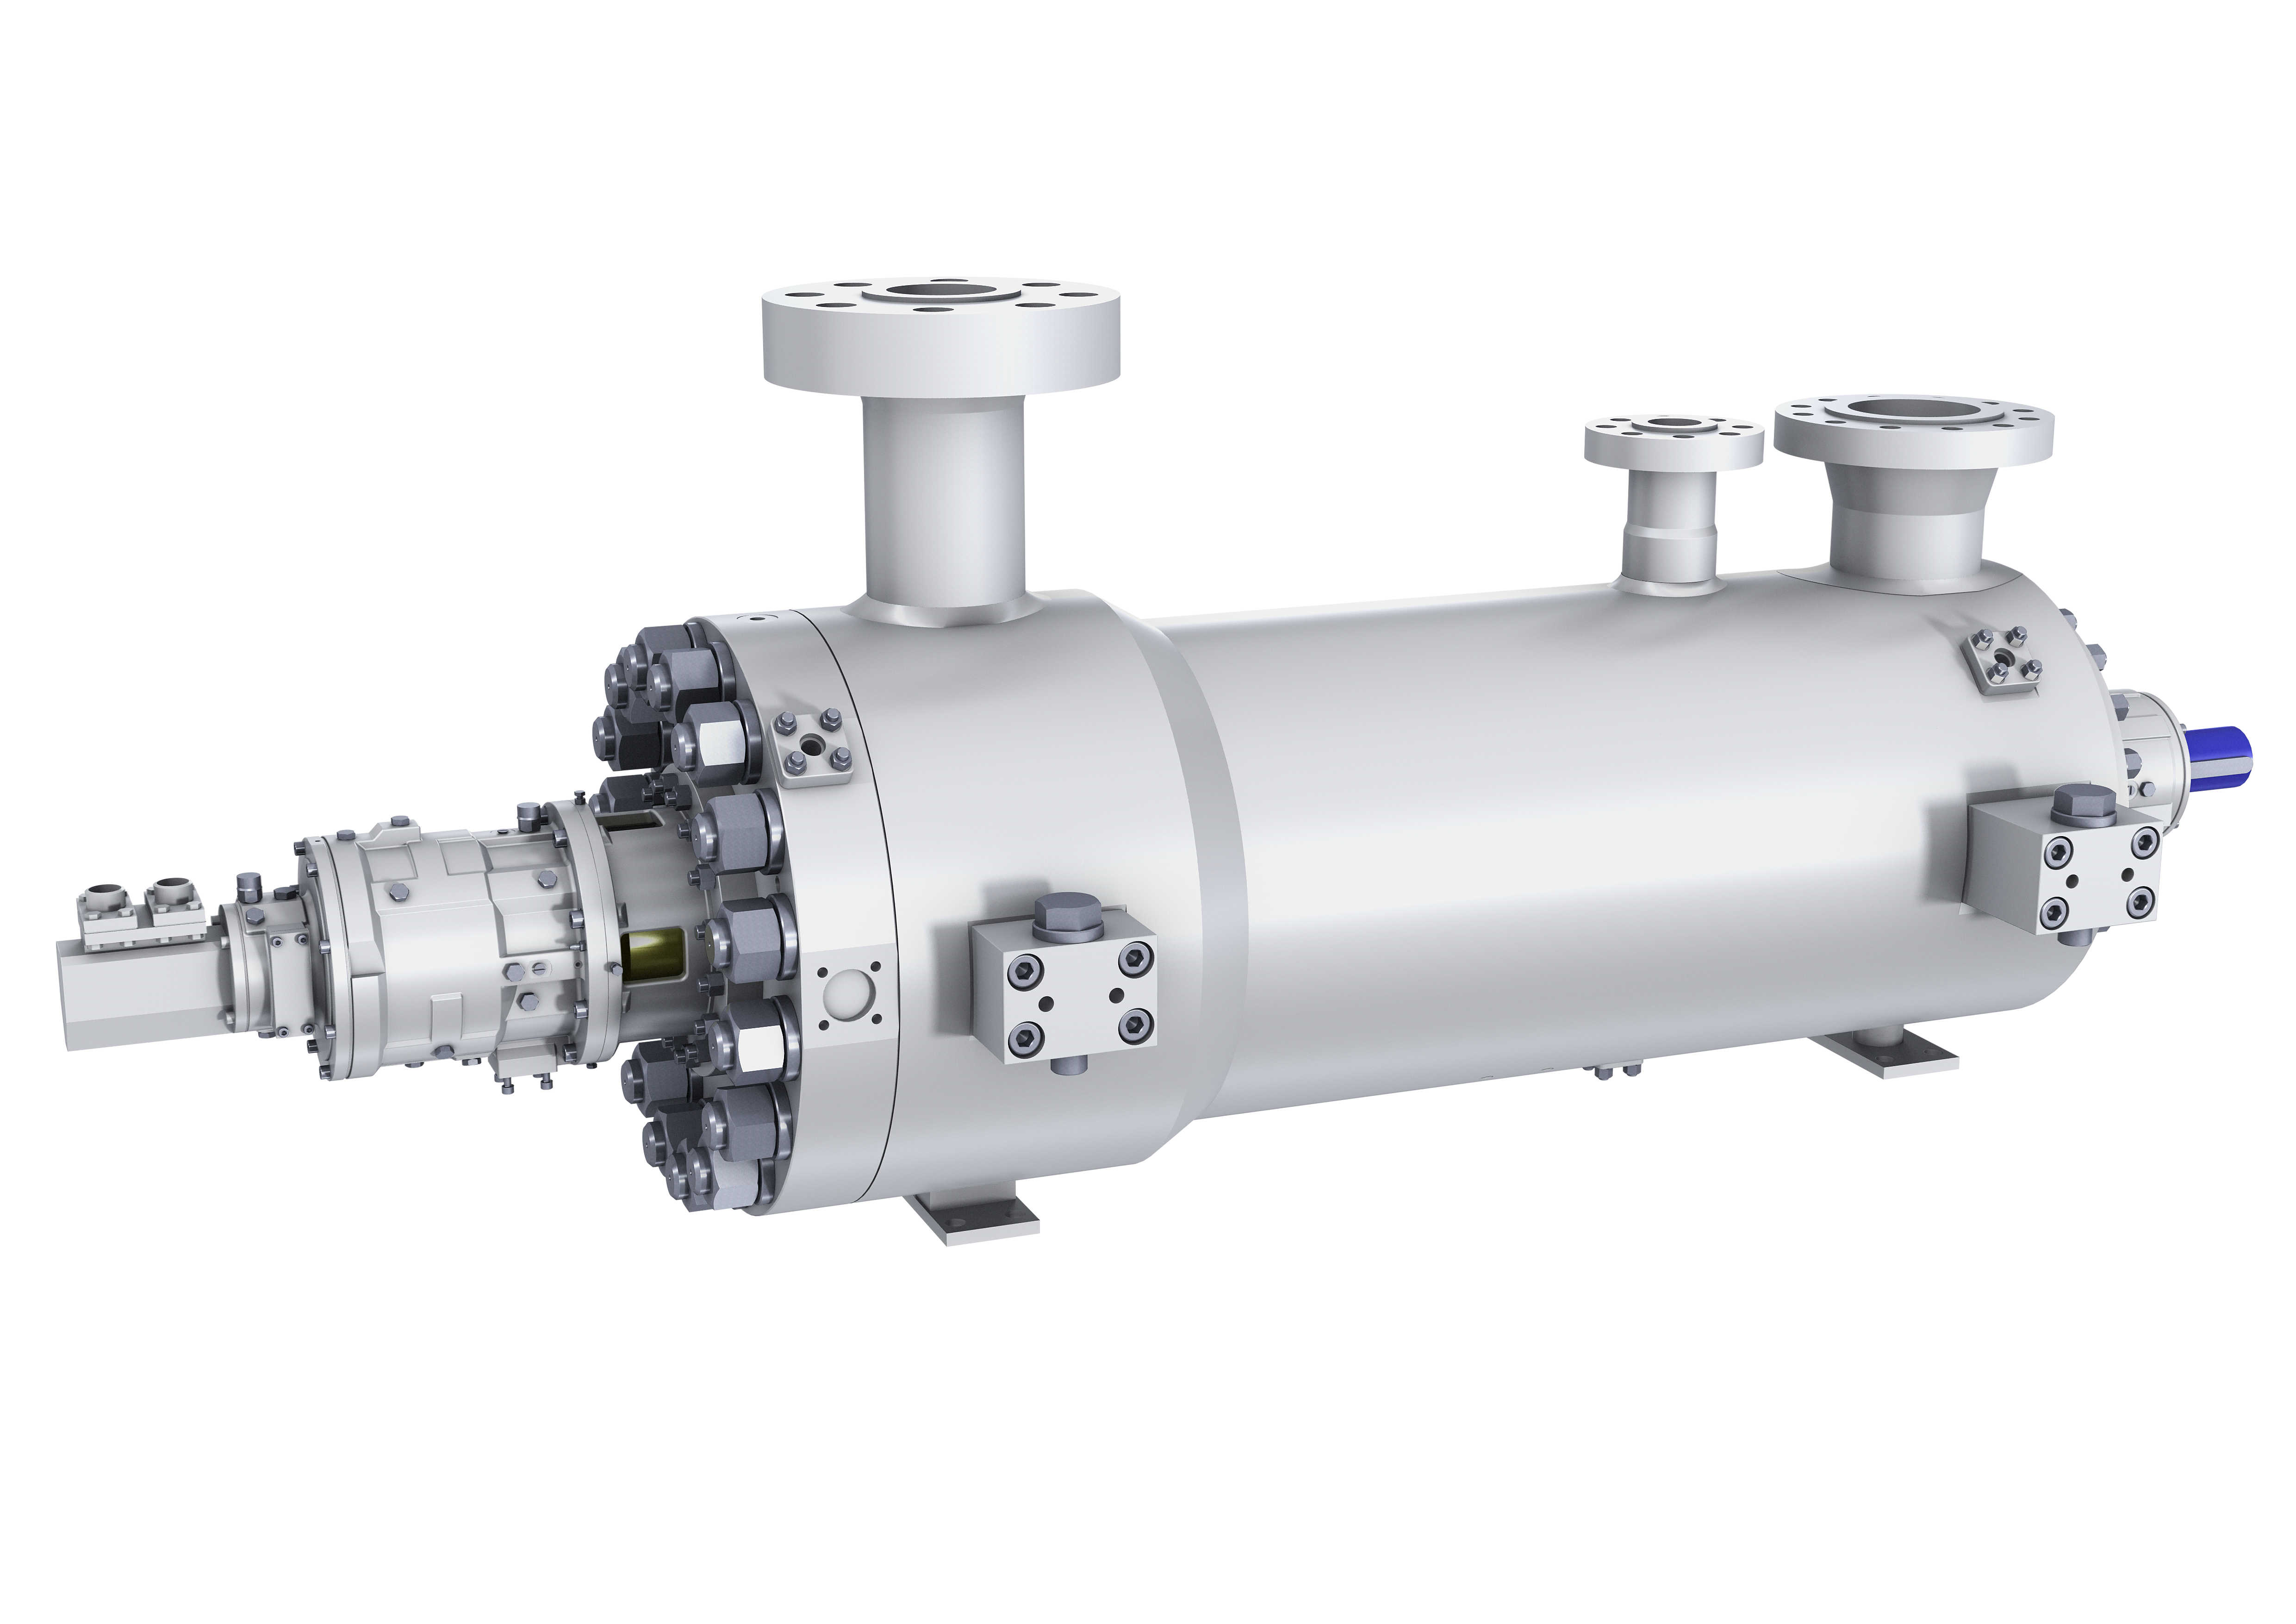 GSG diffuser style barrel pump for feedwater applications